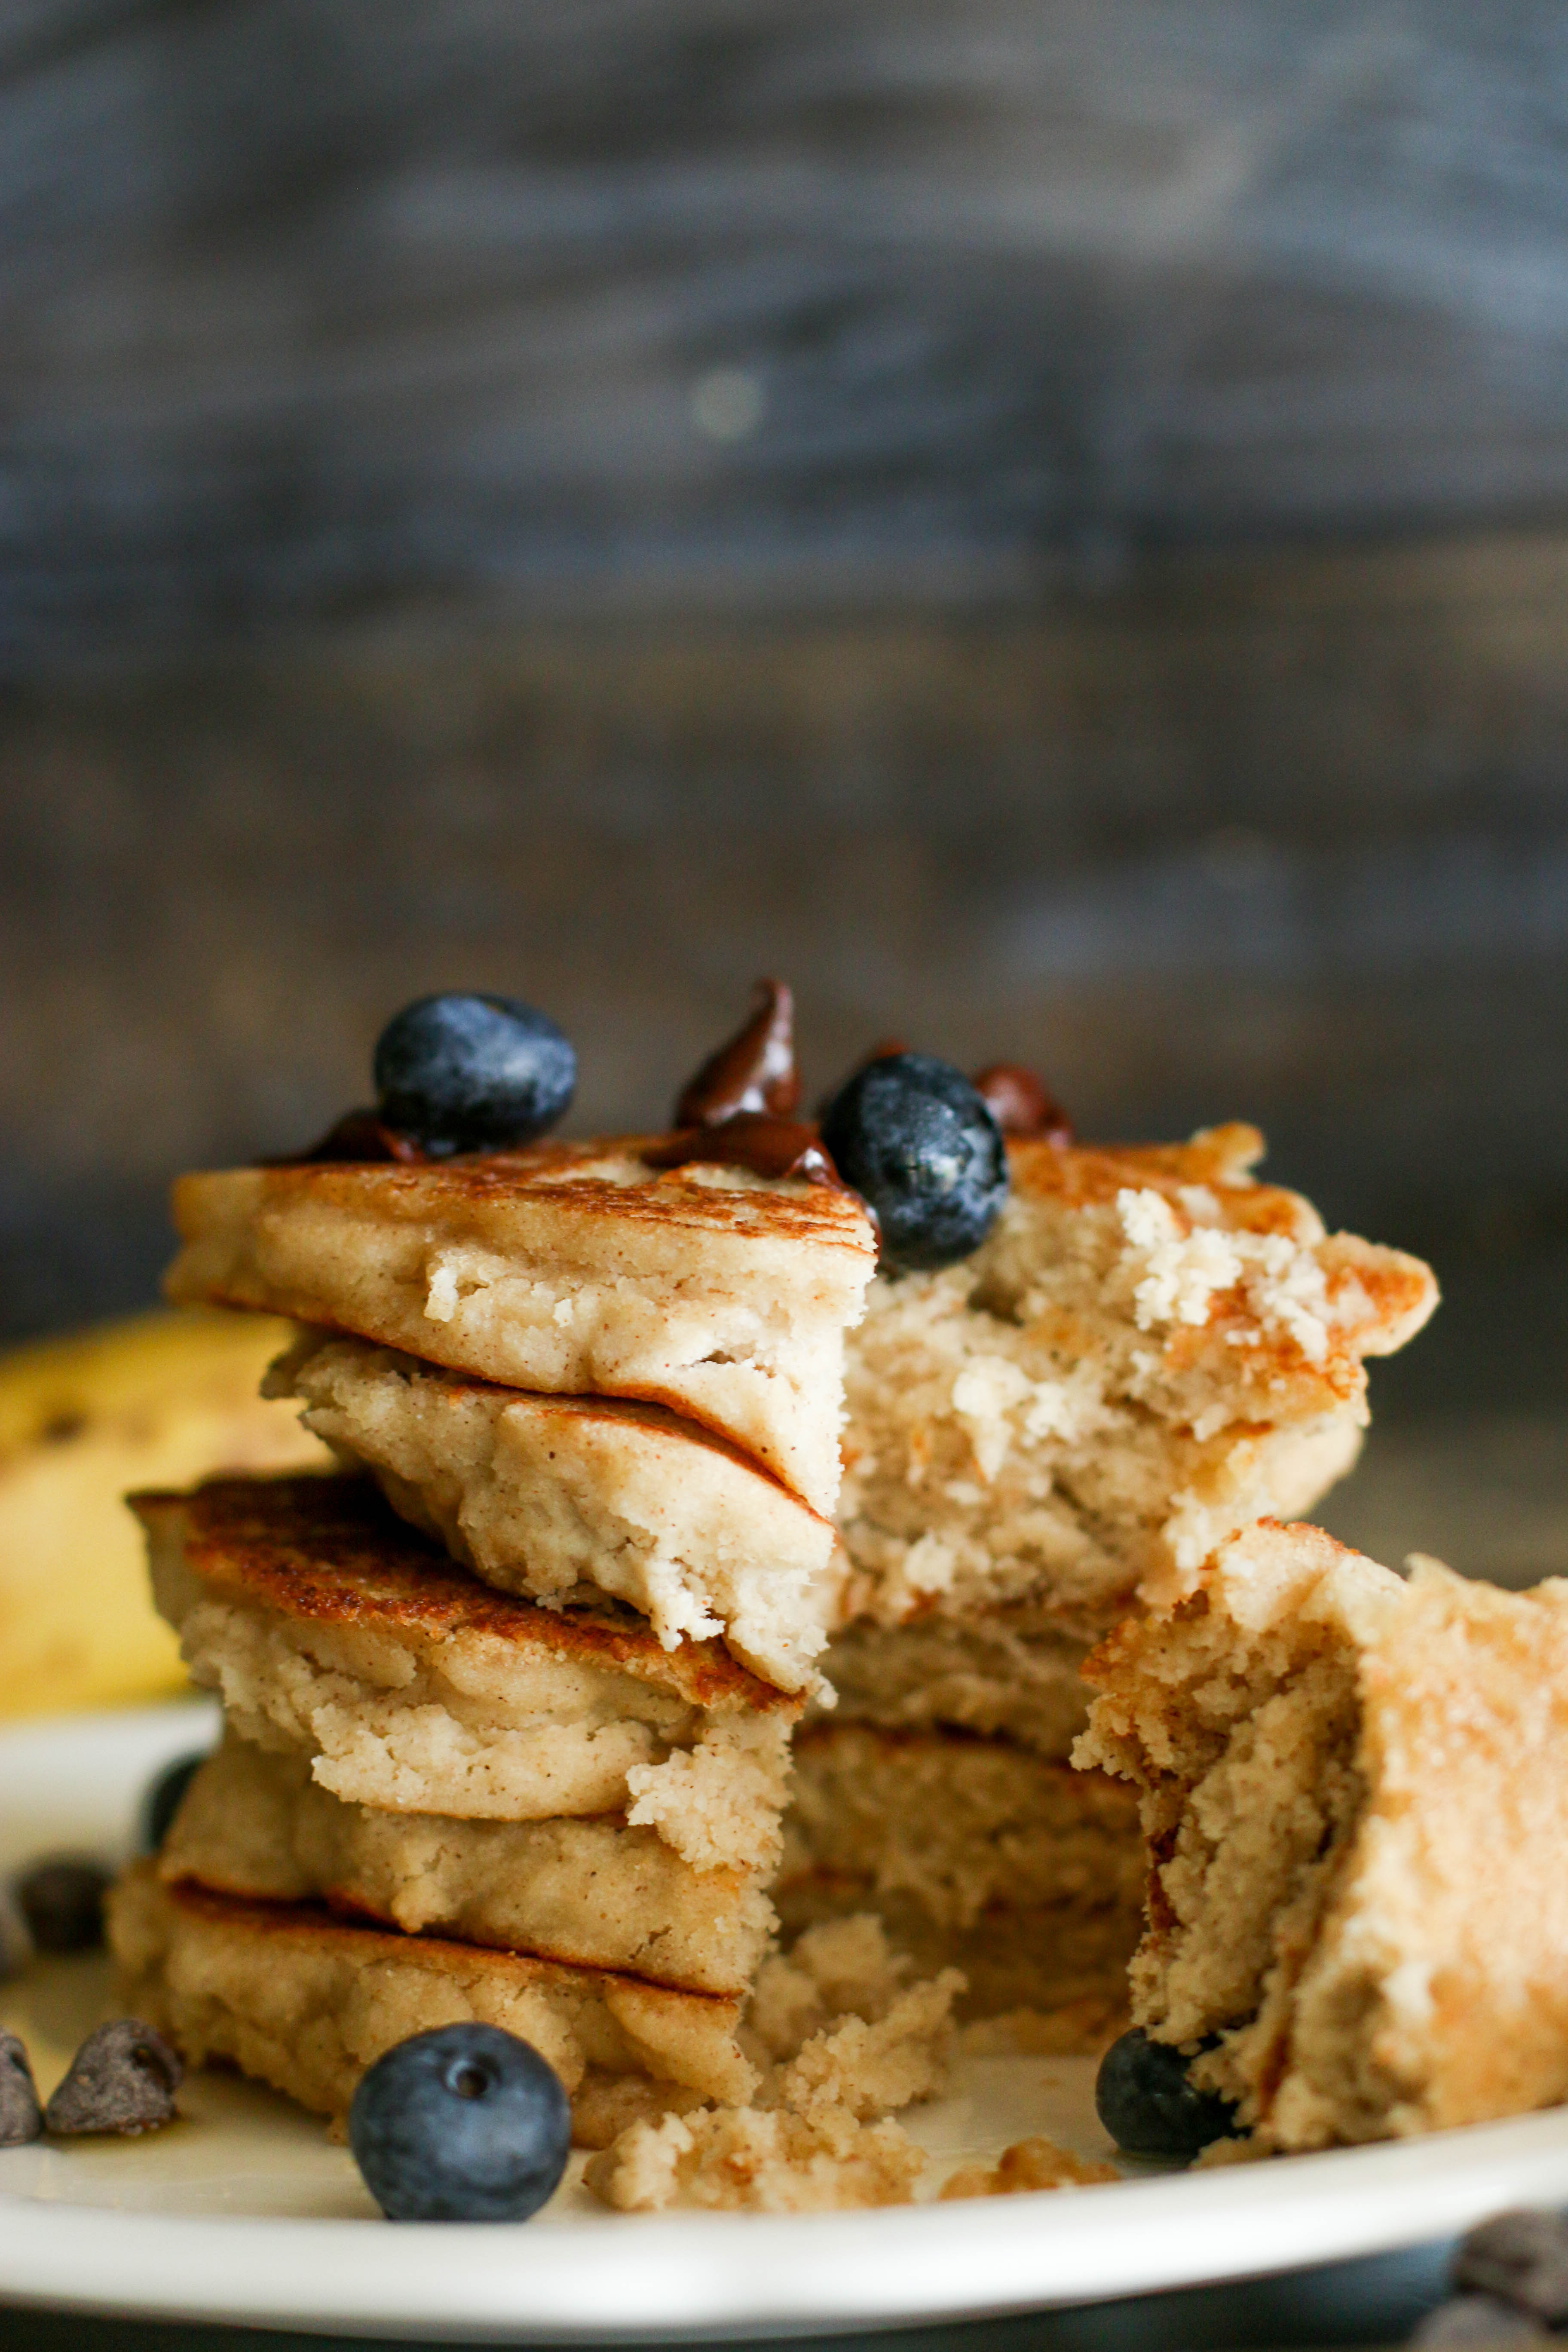 These fluffyvegan & gluten free protein pancakes are easy to make, refined sugarfree, packed with flavor, and the perfect treat! Ready in 3o minutes and packed with protein, they're a great refuel meal.